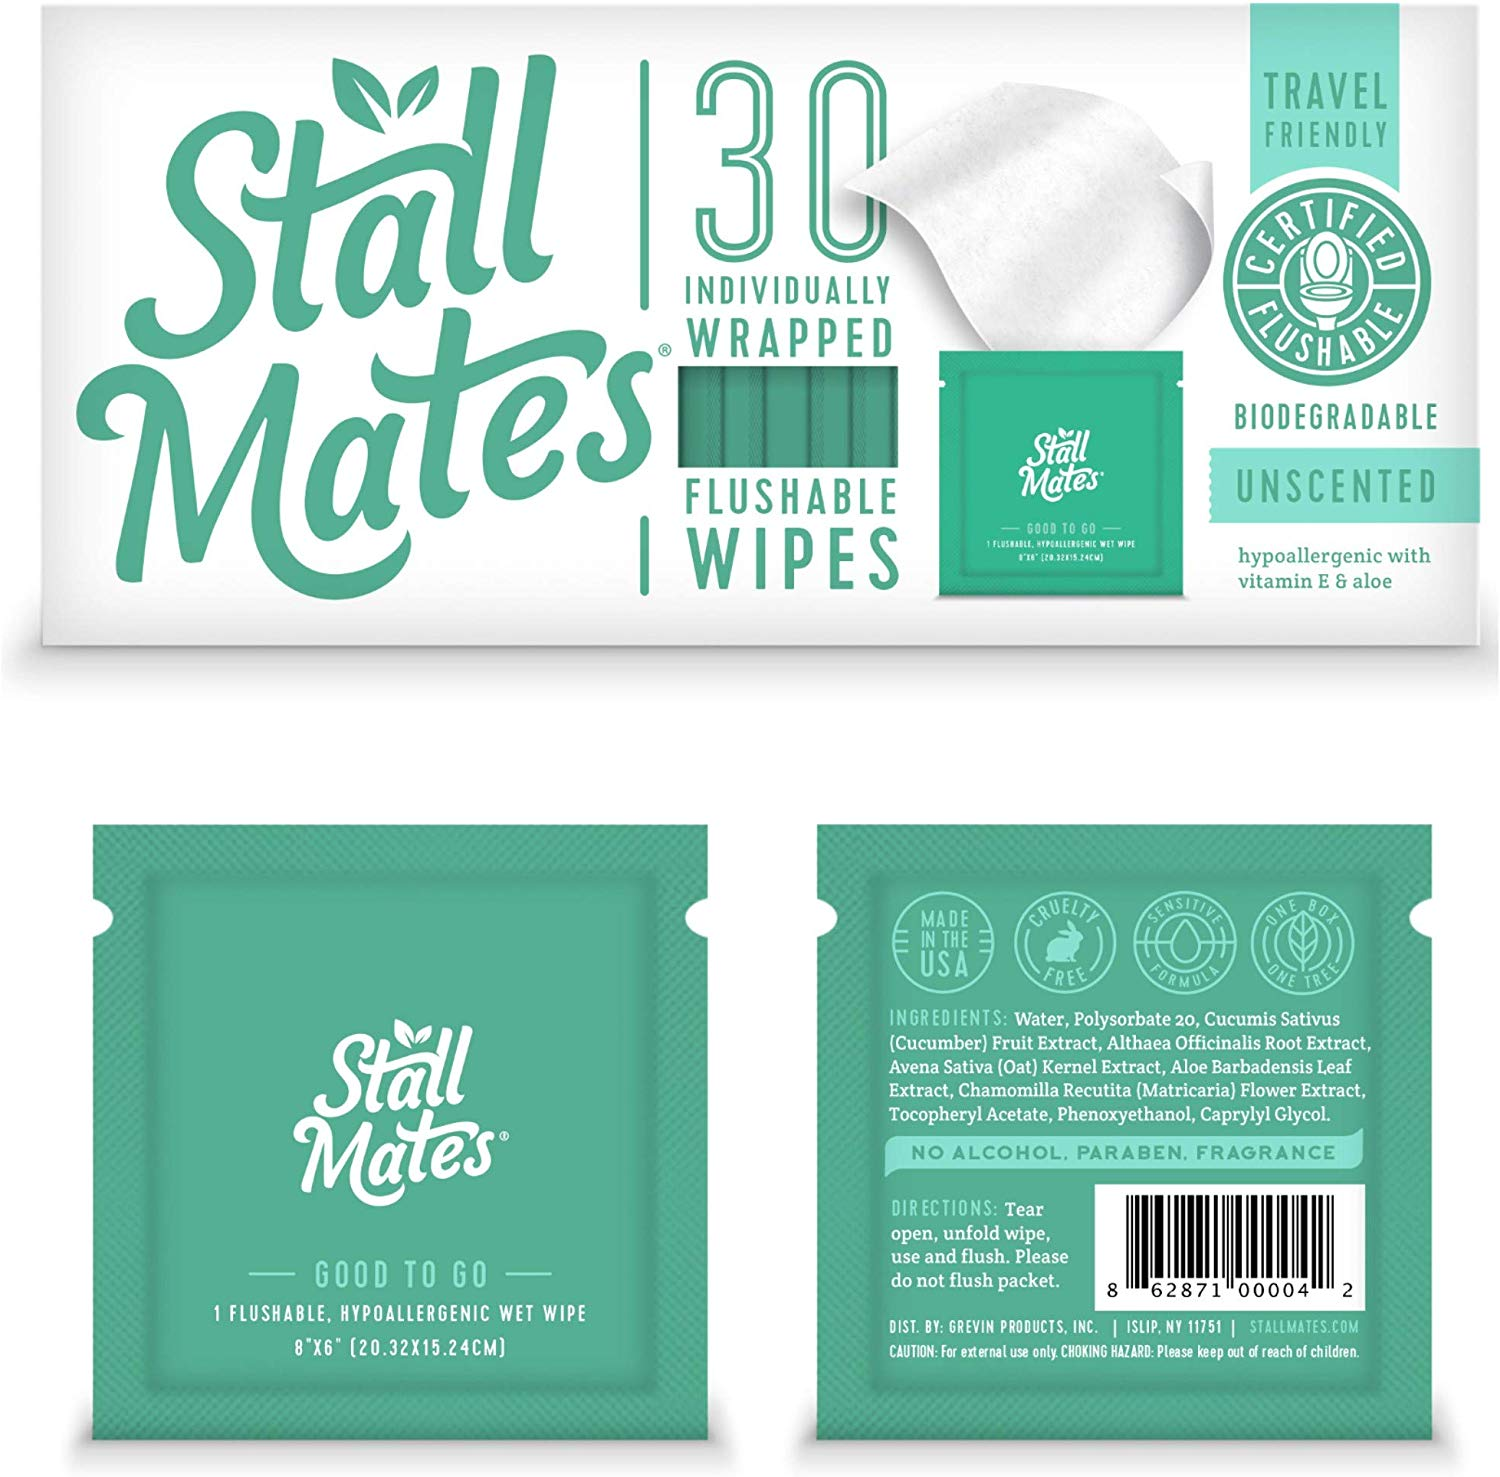 Stall Mates: Flushable, Individually Wrapped Wipes for Travel. Unscented with Vitamin-E & Aloe, 100% Biodegradable